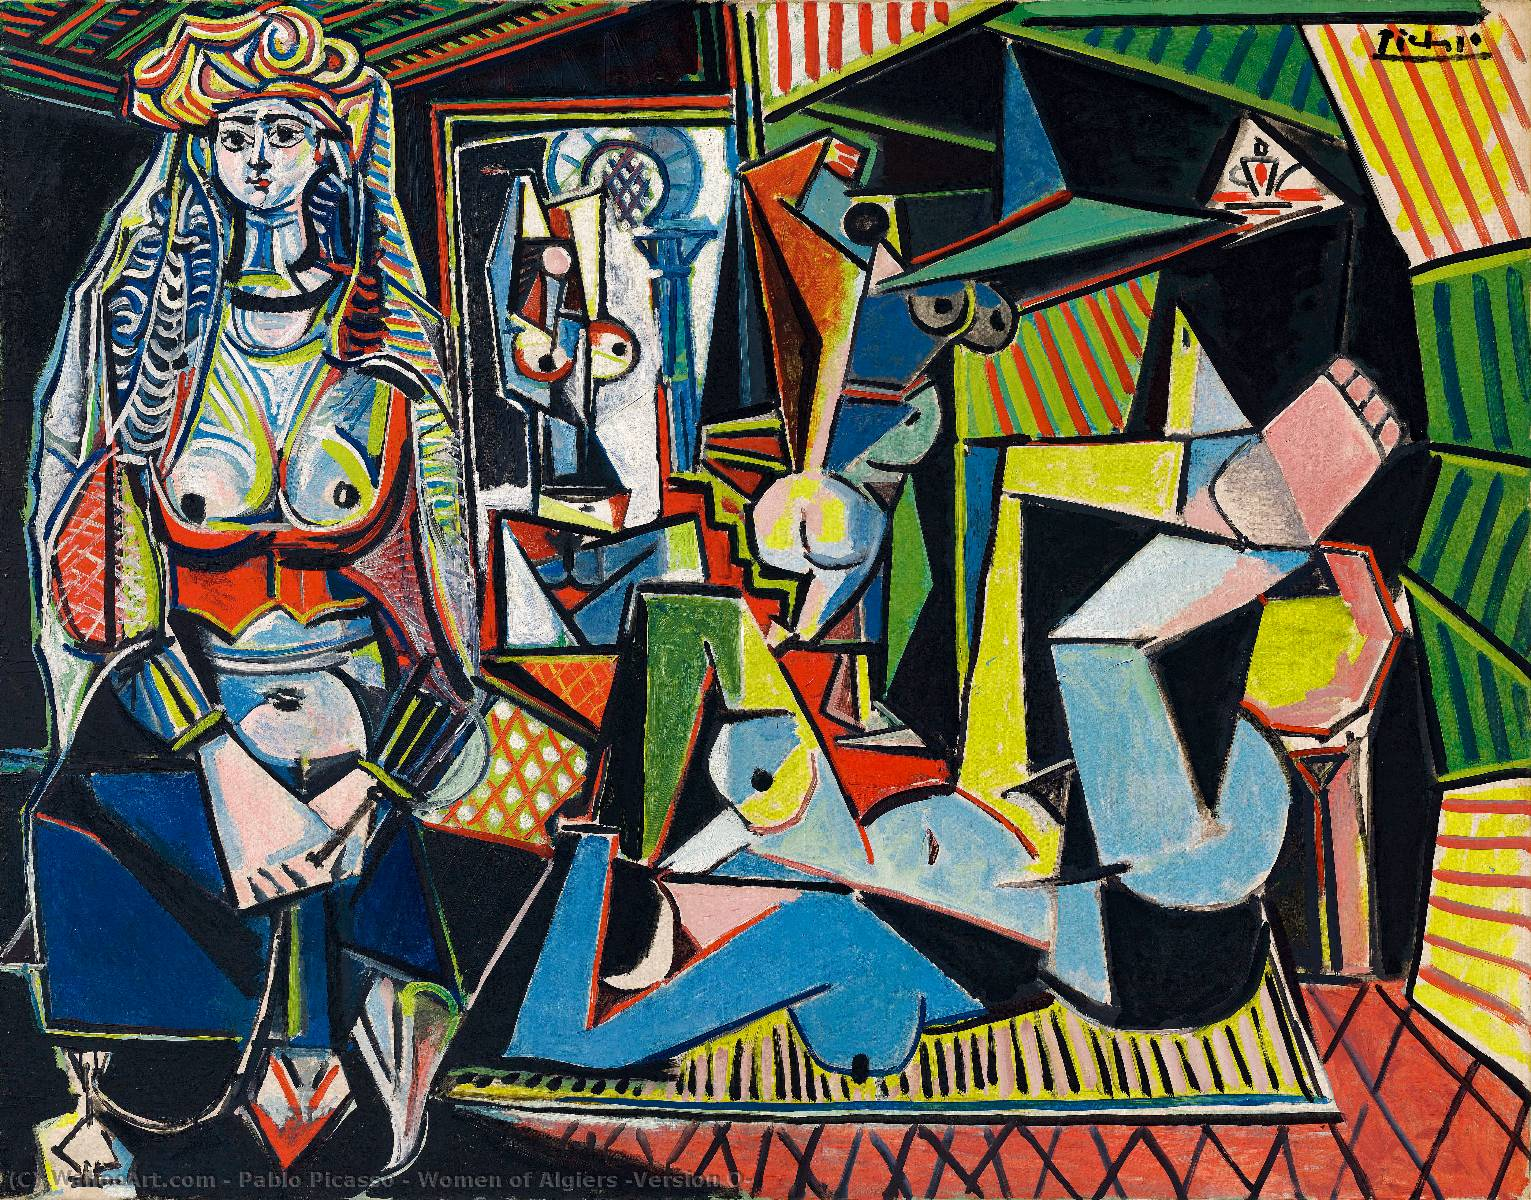 | frauen aus algier ( version o. ) von Pablo Picasso | Most-Famous-Paintings.com